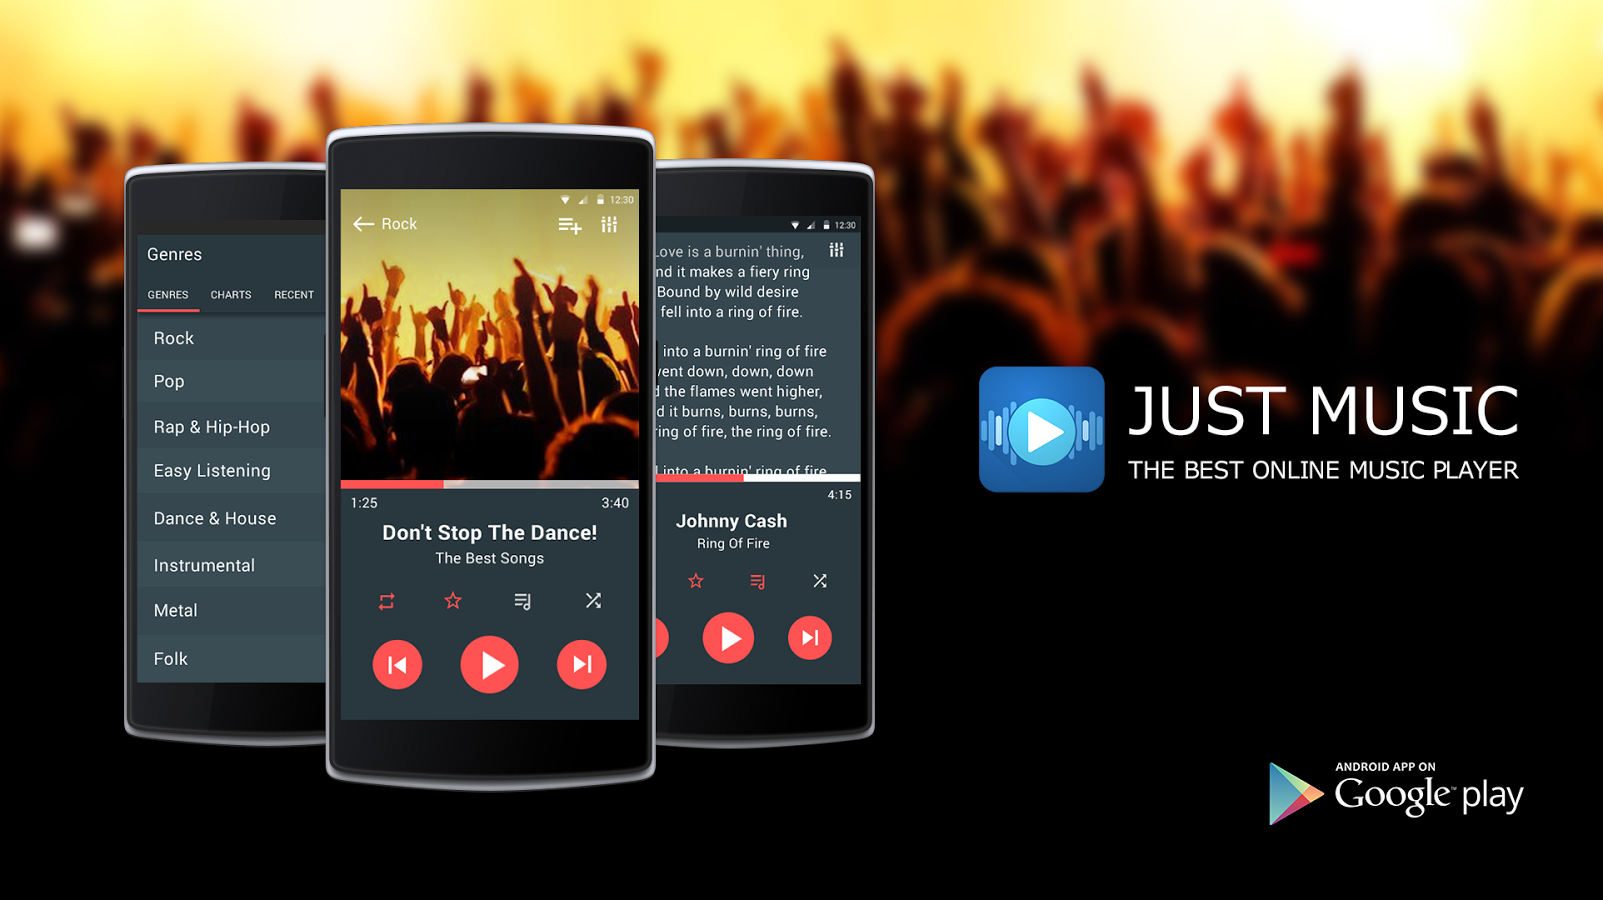 justmusic best music player app